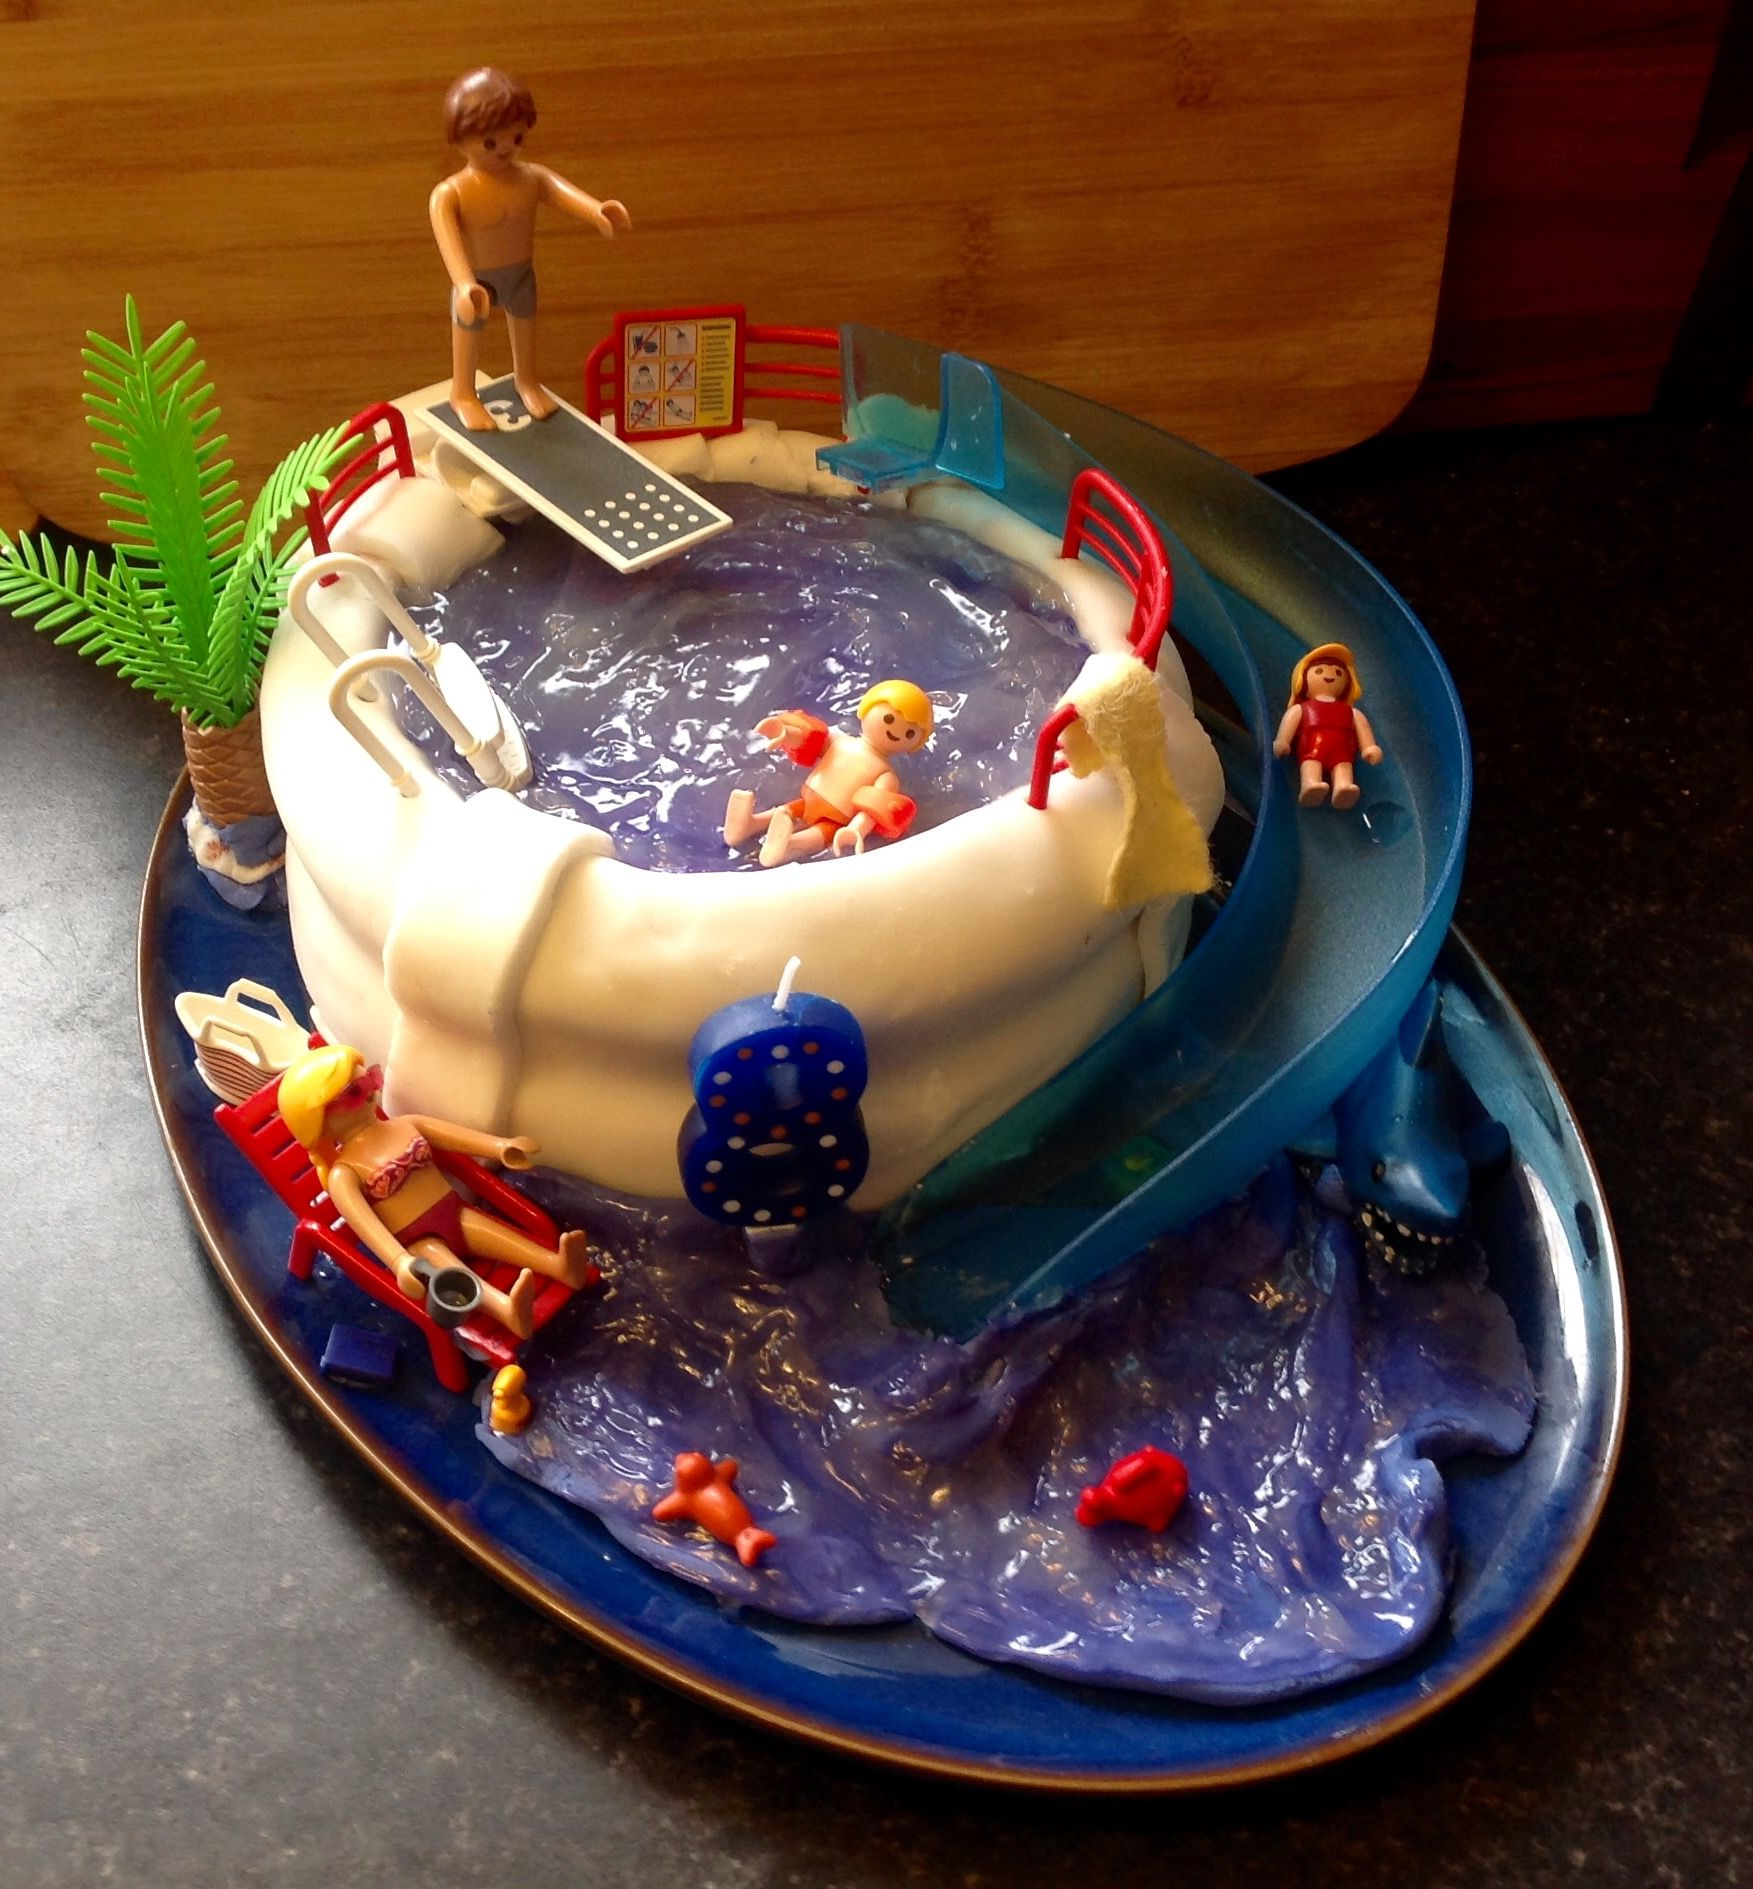 Pool party cake Using Playmobil figures really brought this design to life